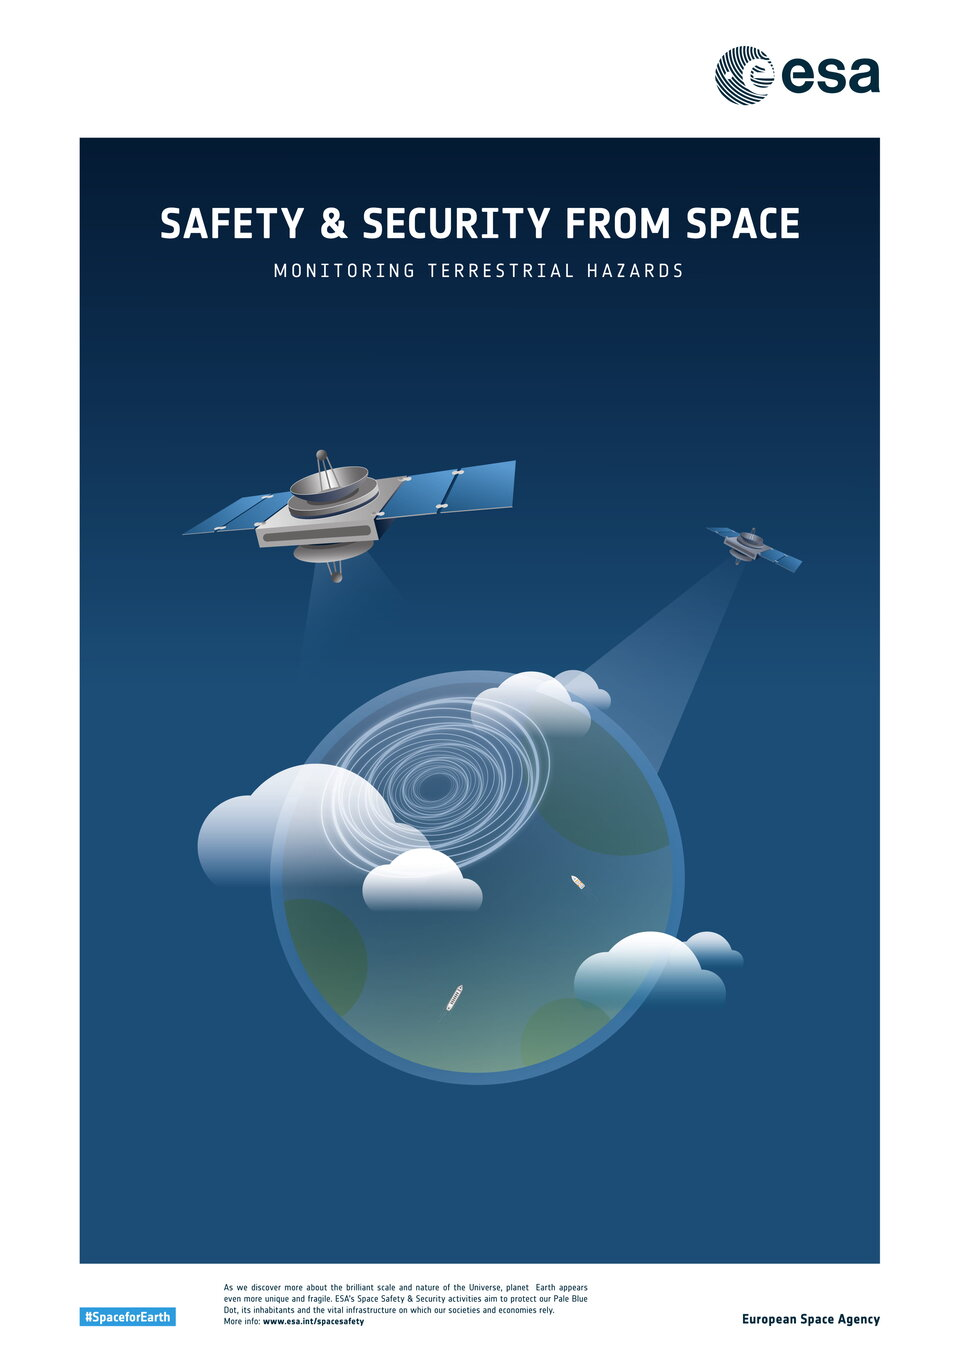 Safety & security from space